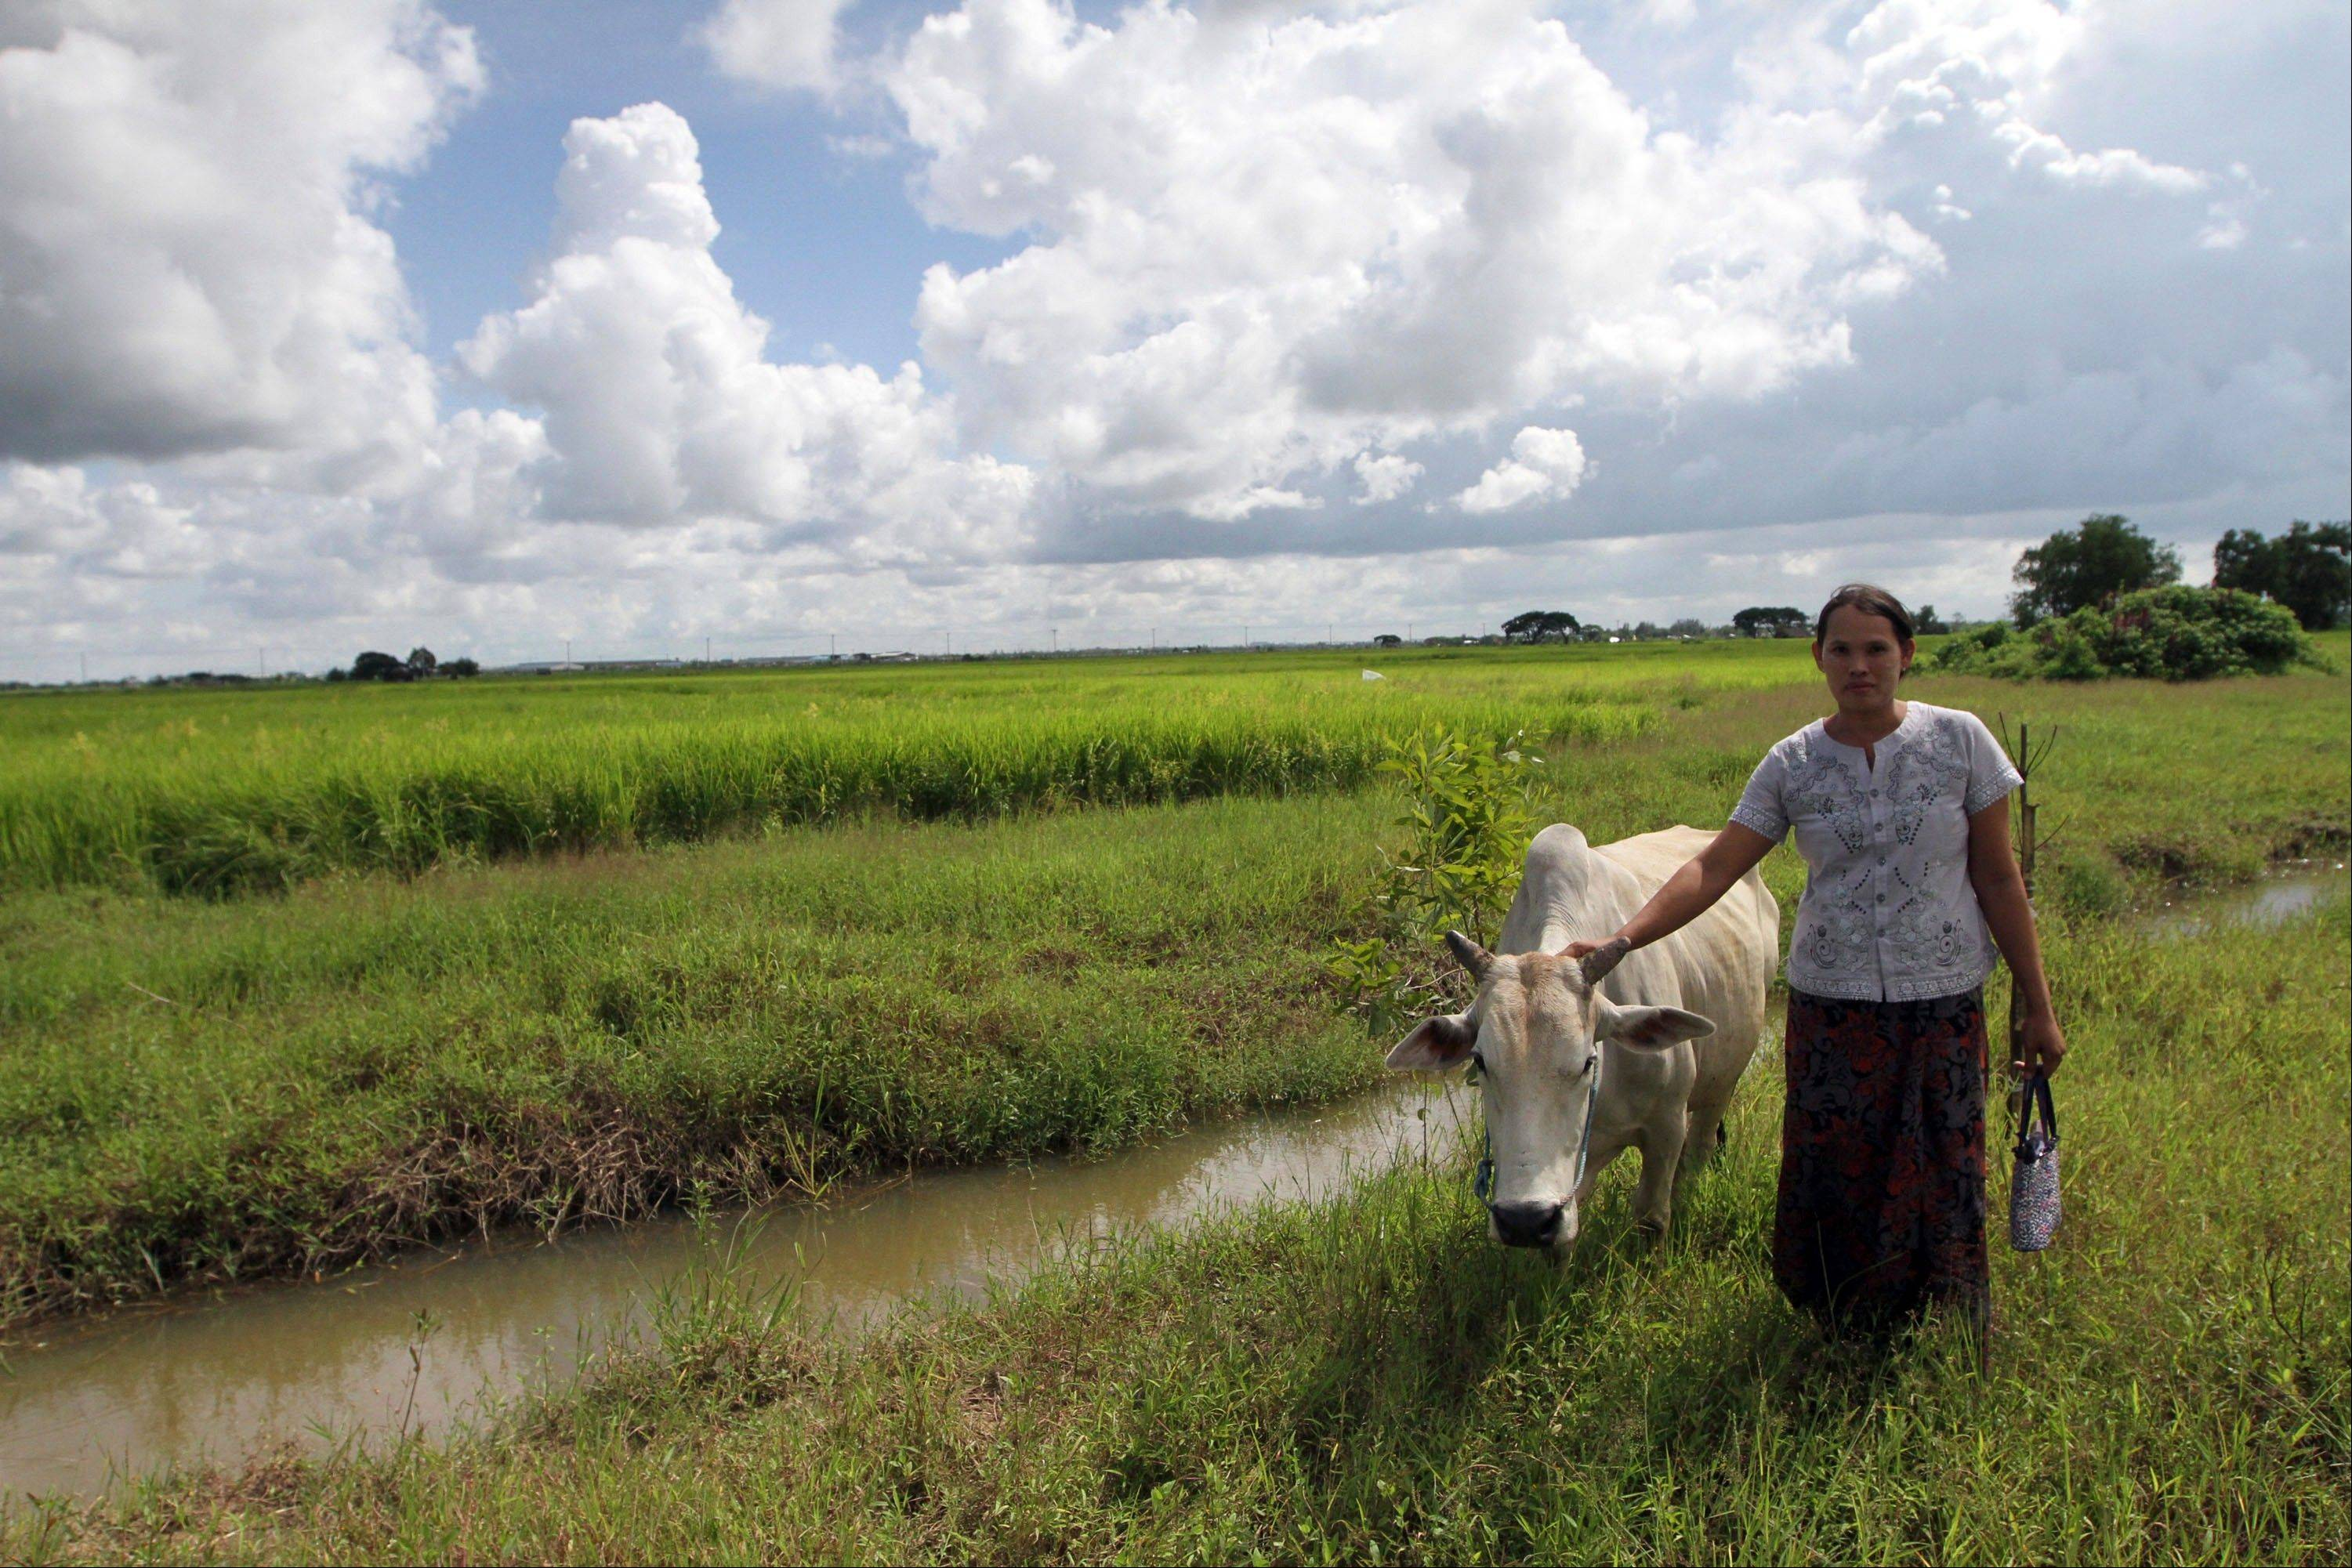 Hnin Nandar stands along with her cow near her farmland at Mingaladon township, northern outskirts of Yangon, Myanmar. The landscape of Mingaladon township tells a story of economic upheaval. Skeletons of factories for a new industrial zone rise from thick green rice paddies local farmers say were seized illegally by the Zaykabar Company, one of Myanmar�s most powerful companies. Human rights groups say land battles could intensify because companies tied to the military and business elite are rushing to grab land as the country emerges from five decades of isolation and opens its economy.